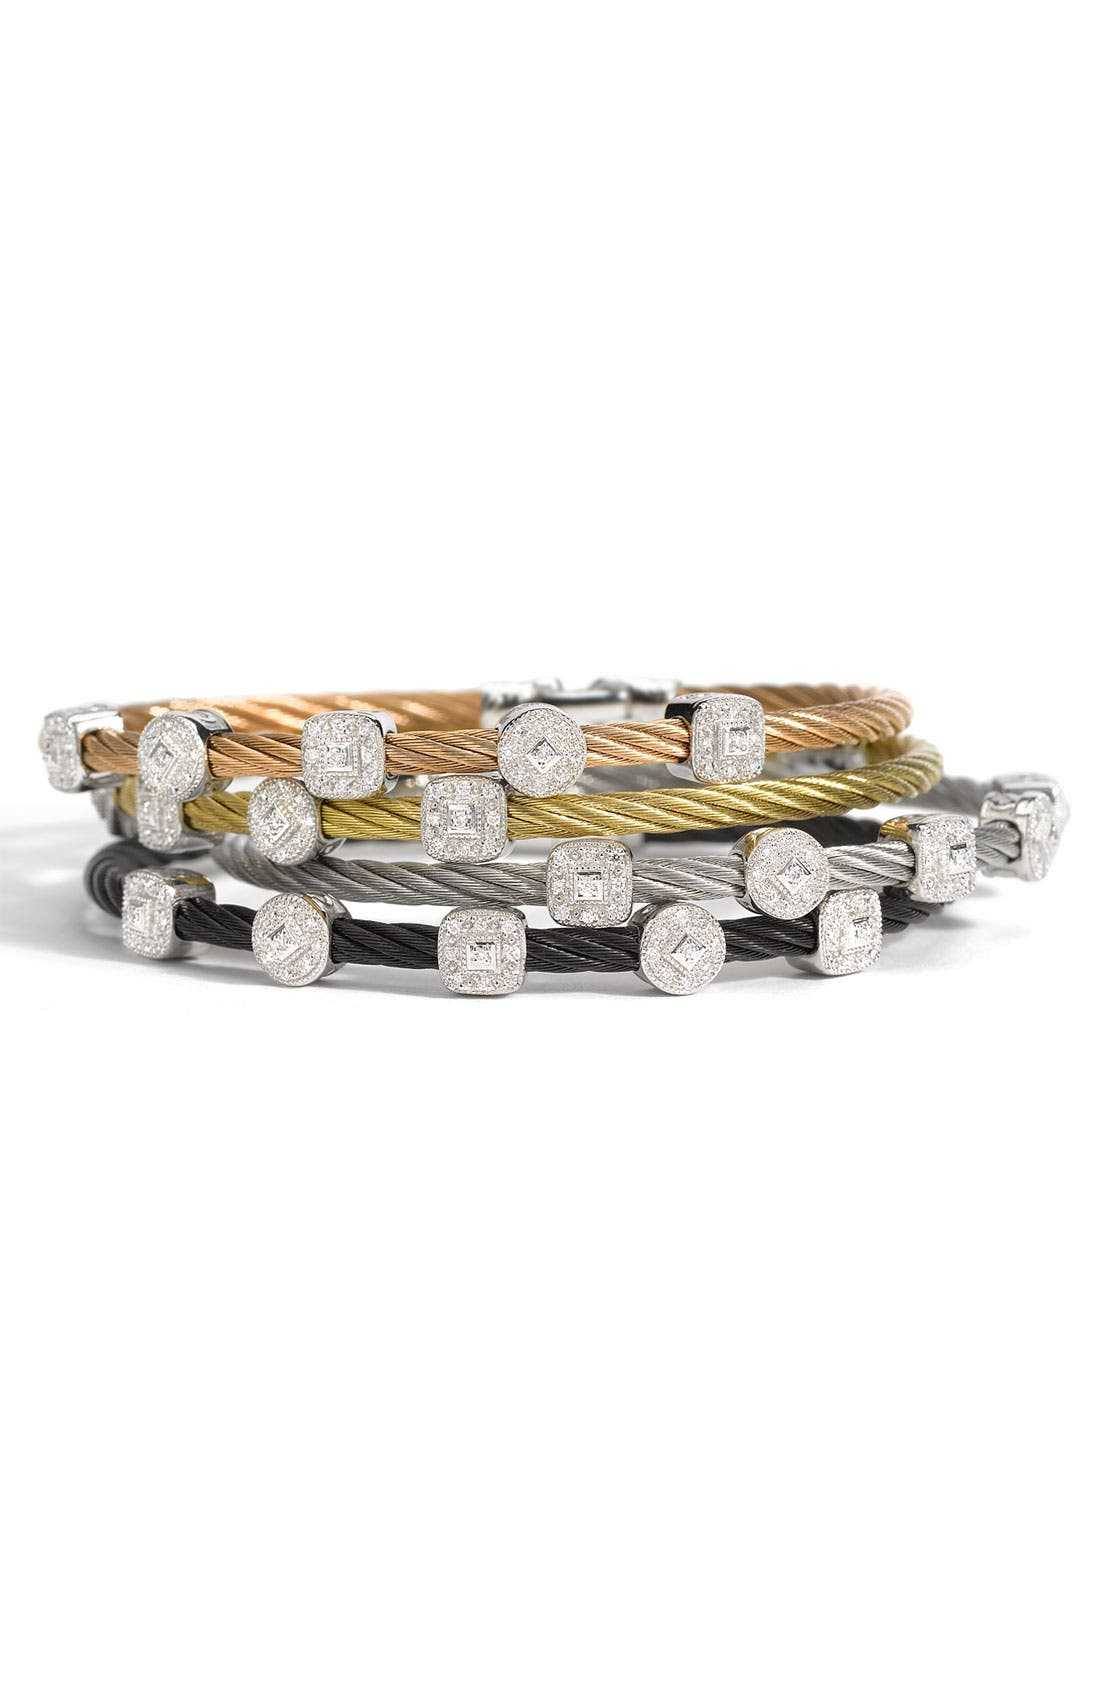 Alternate Image 1 Selected - ALOR® 5-Station Diamond Bracelet (Nordstrom Exclusive)